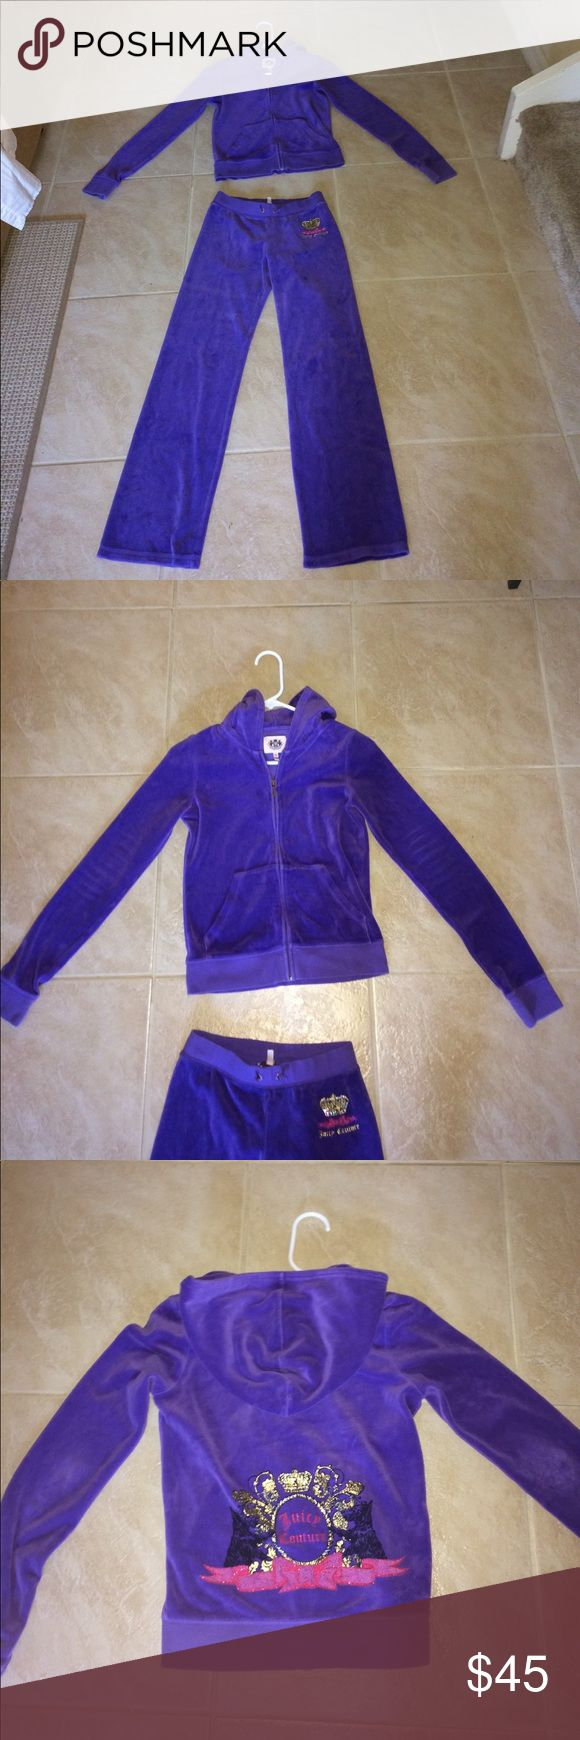 Purple Juicy Couture Sweatsuit Juicy couture purple sweatpants with matching jacket! Girls extra large. Like new condition! Juicy Couture Matching Sets